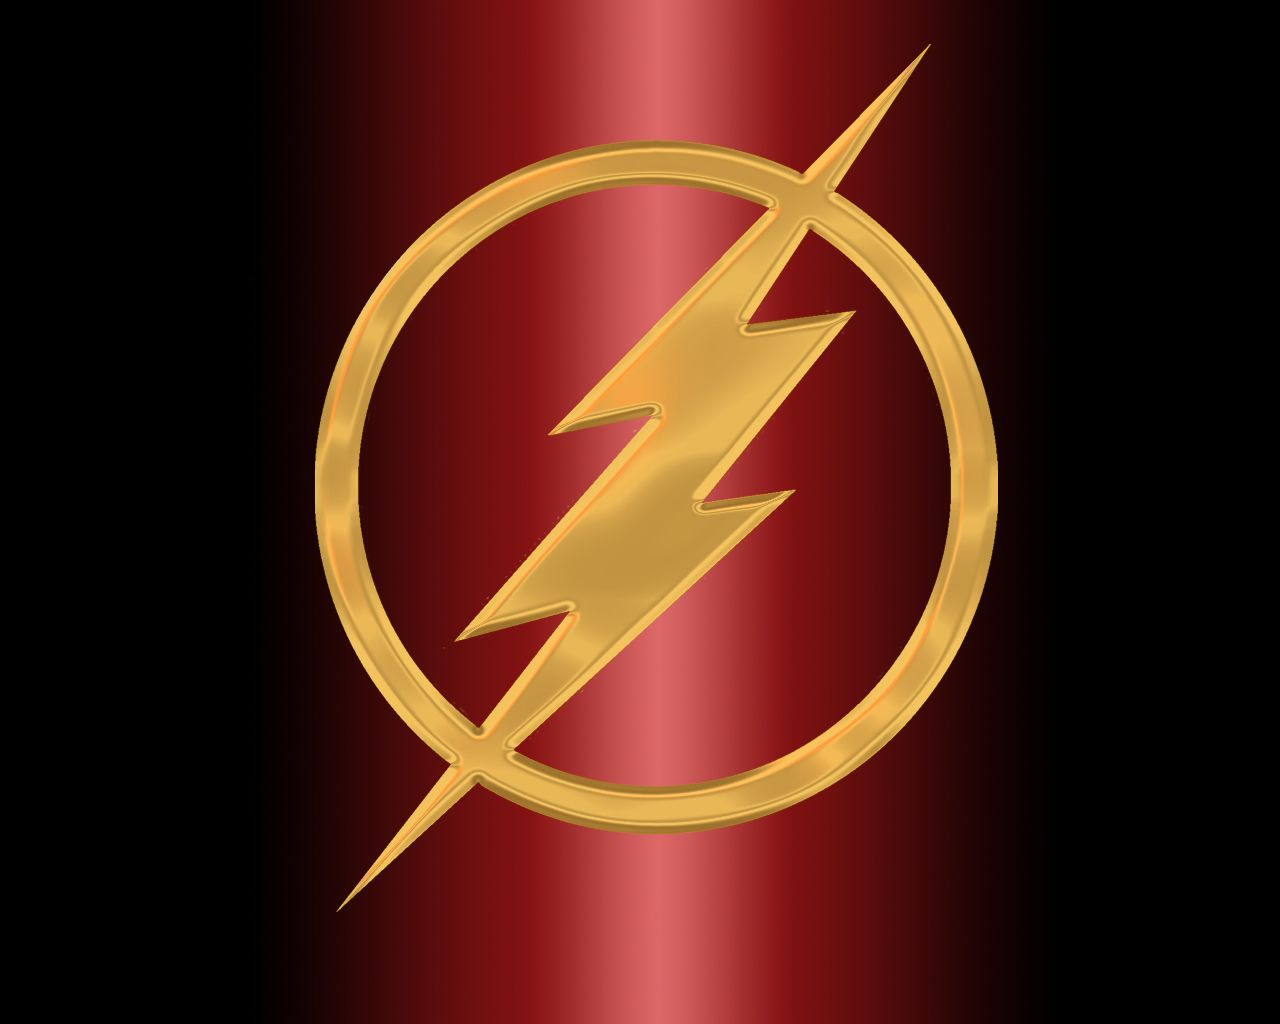 flash pictures logo coming soon �the flash origins of